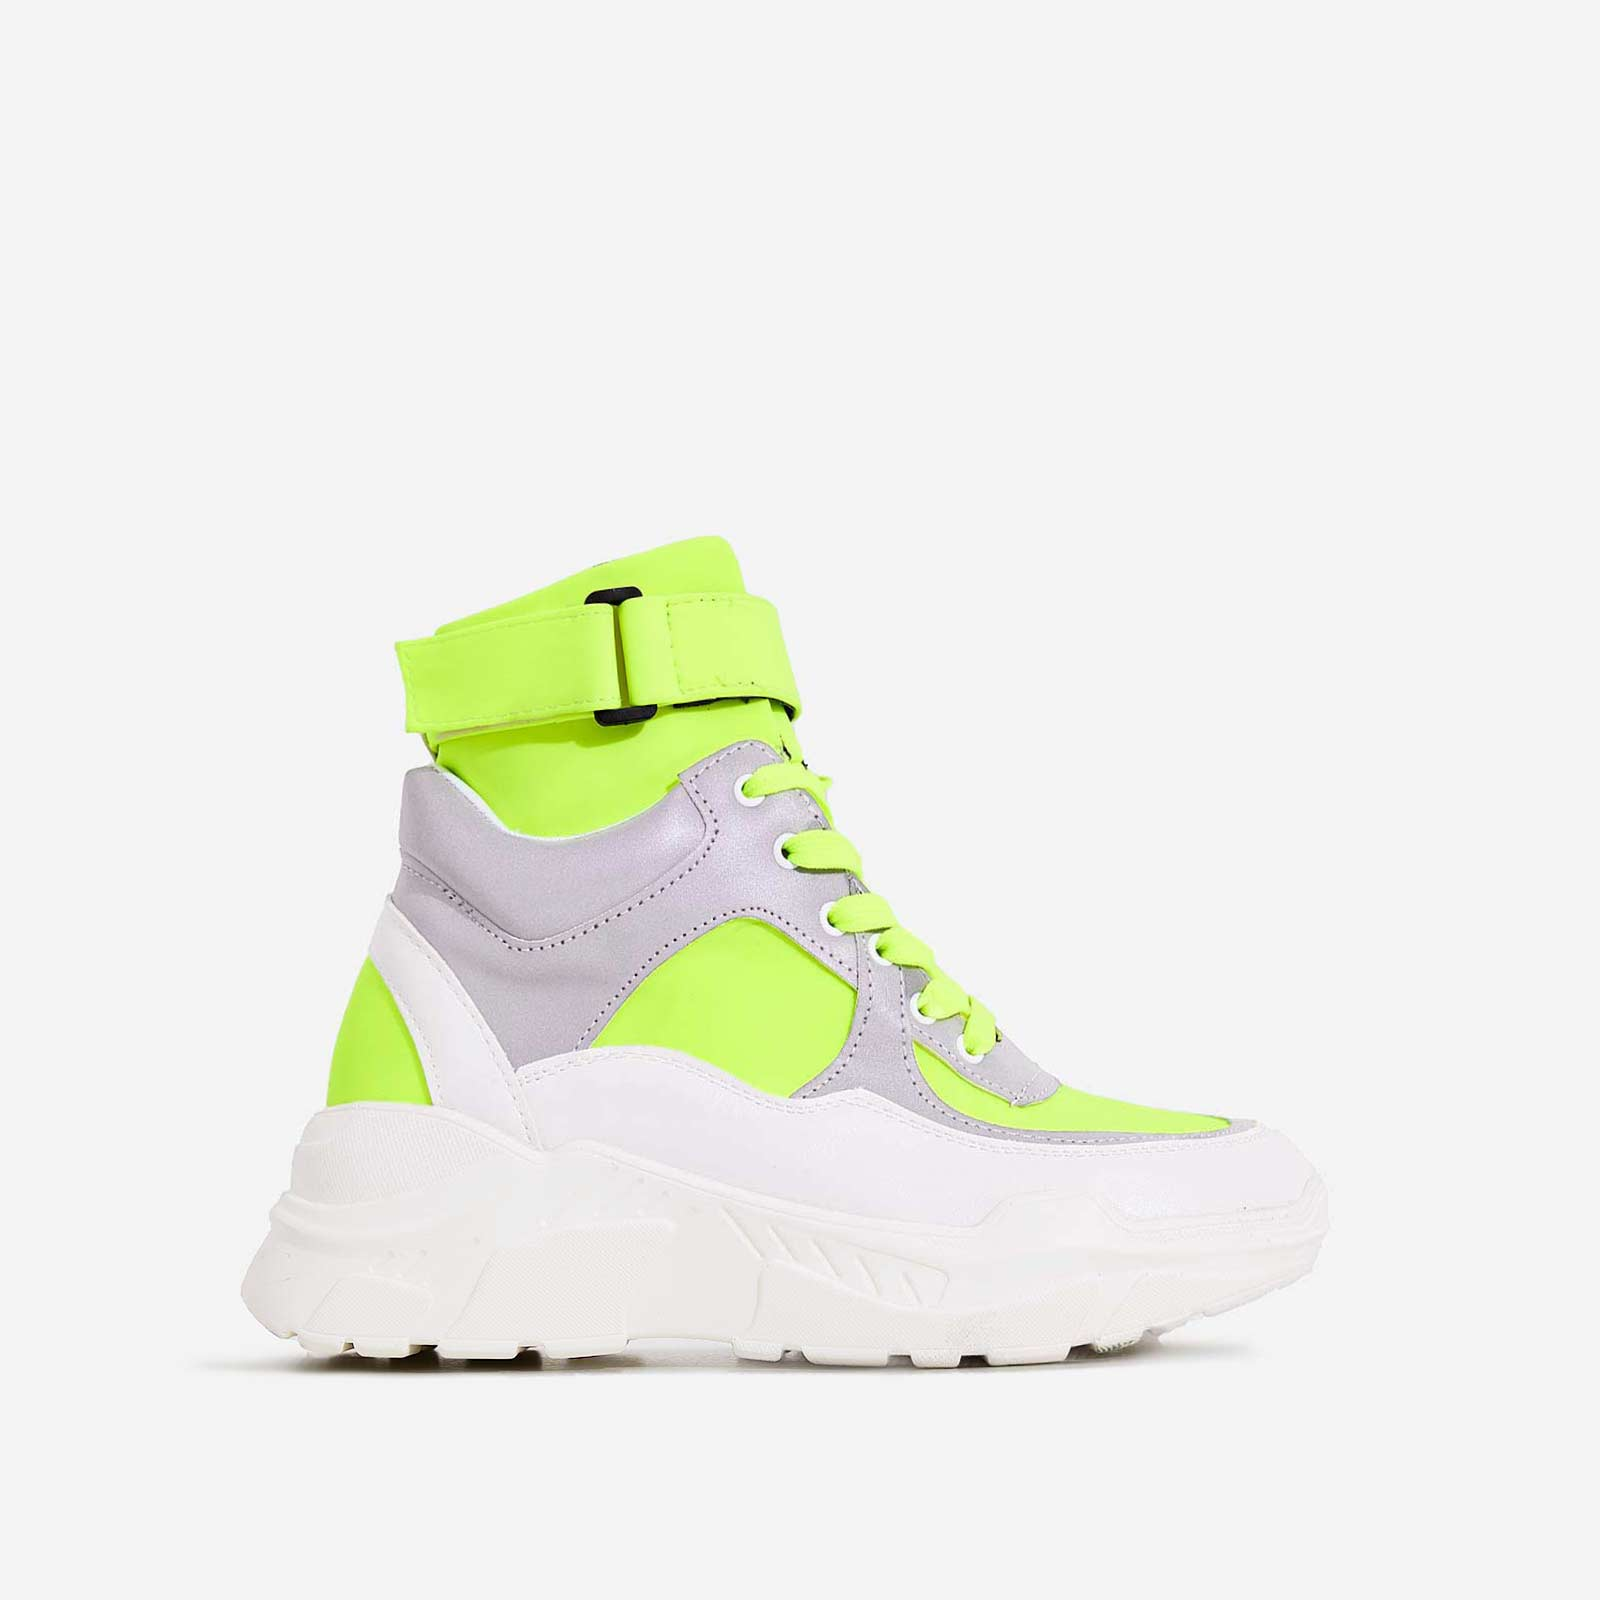 Coco High Top Reflective Trainer In Lime Green